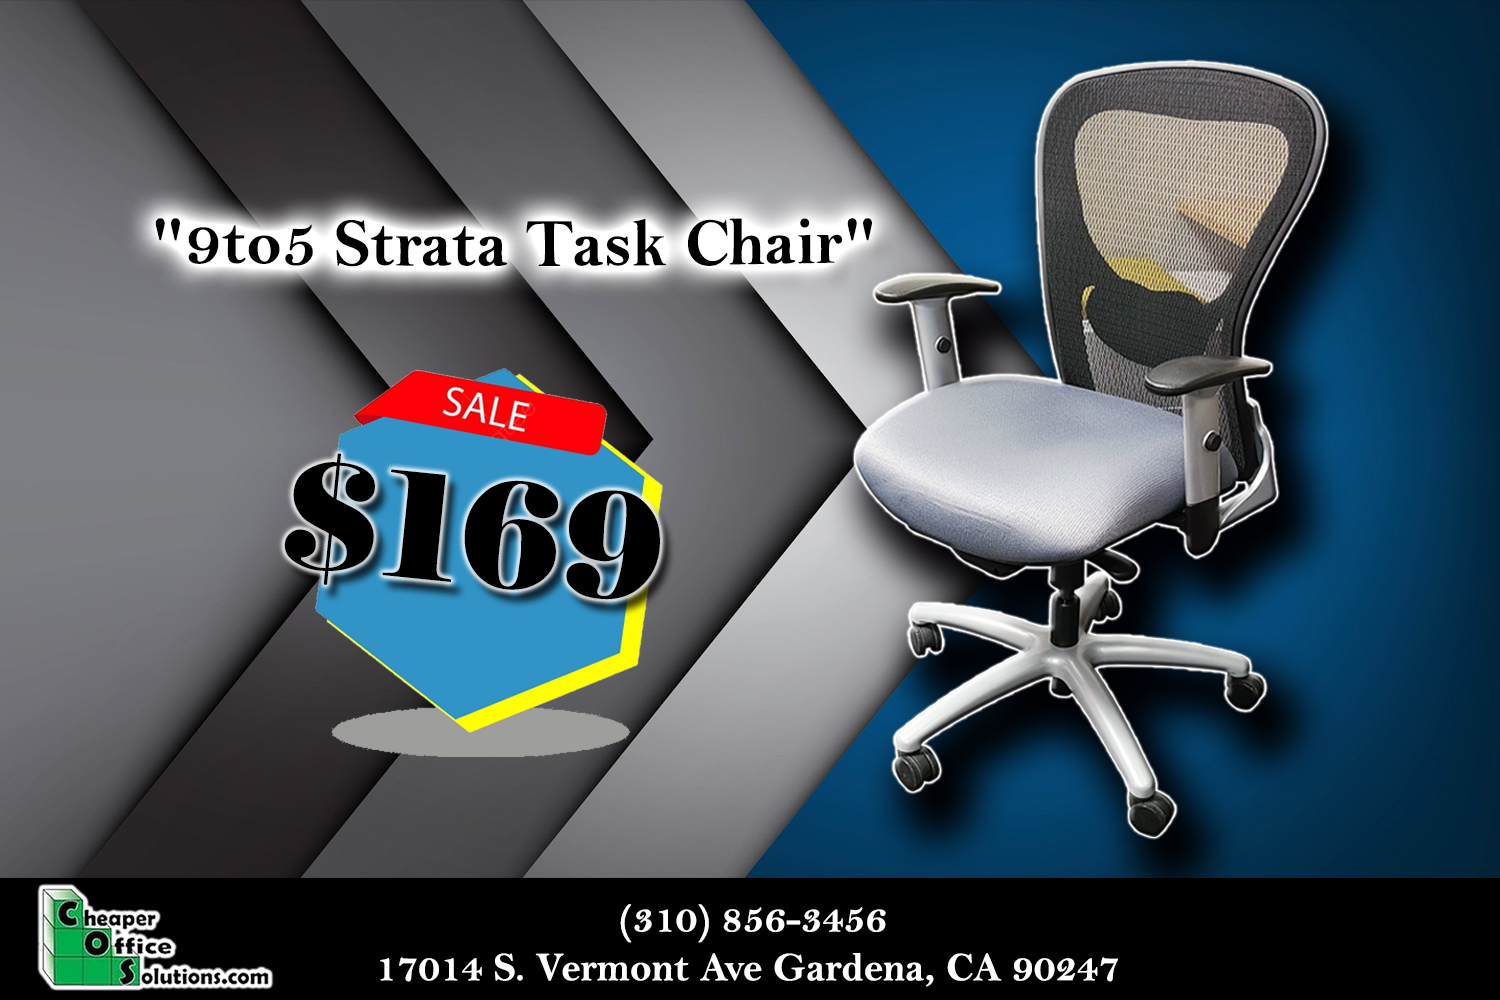 9 to 5 Strata Task Chair